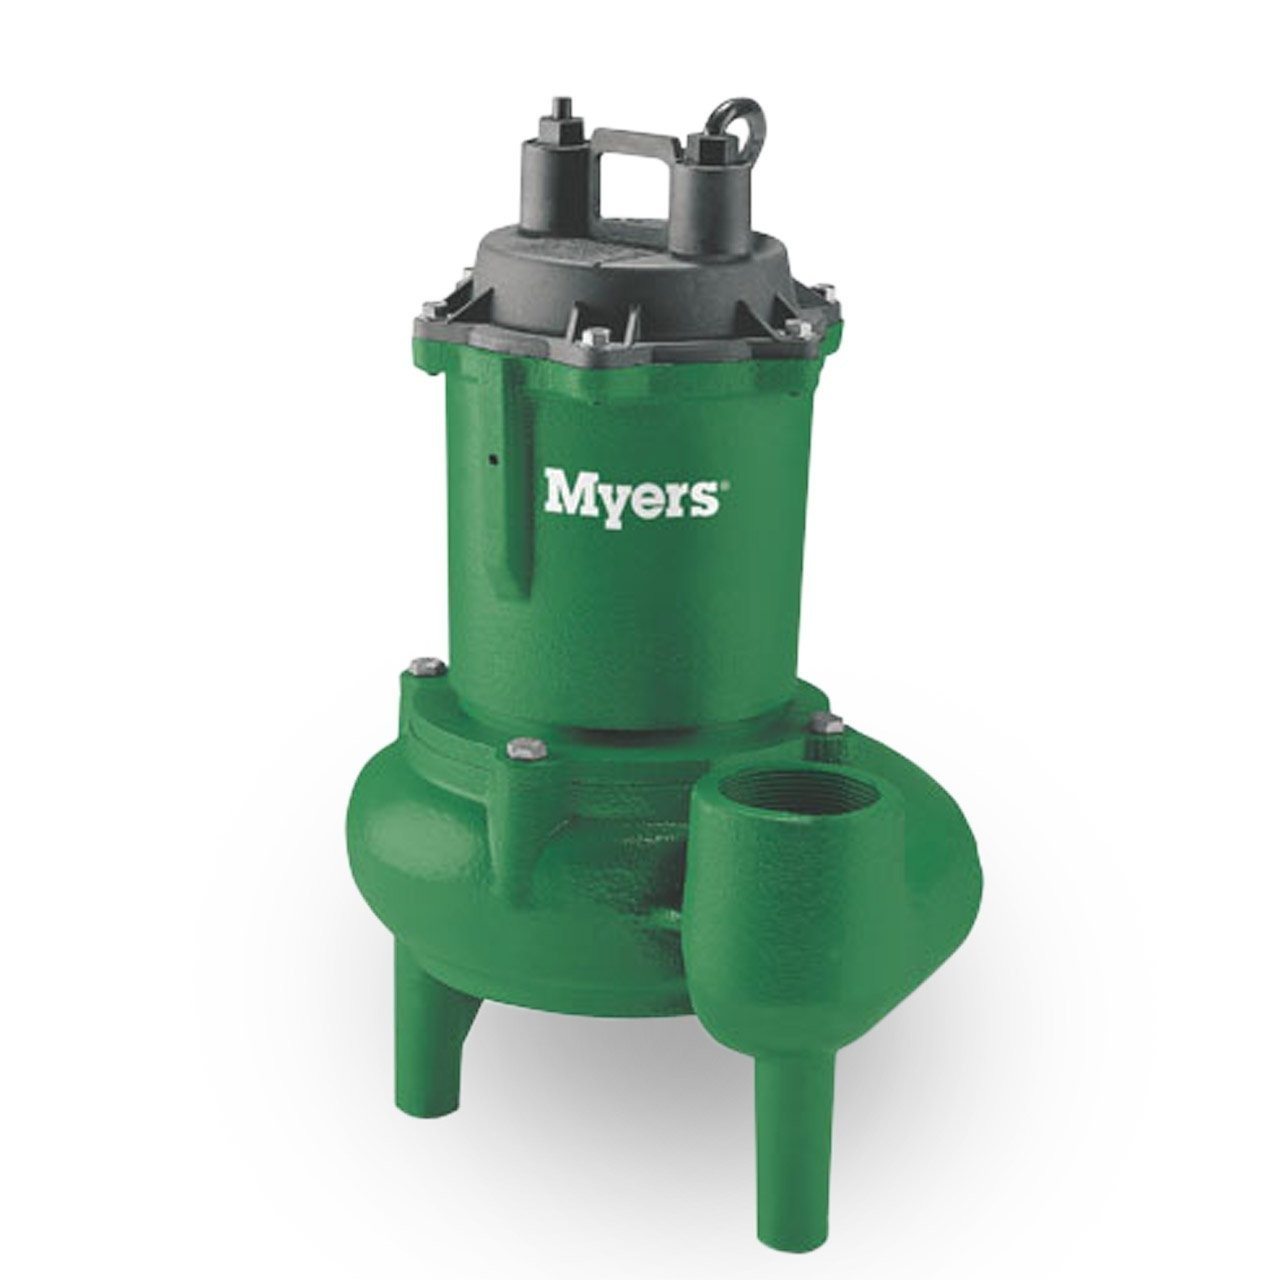 Meyers Turbine Pump MW50-11P,  1/2HP, 135GPM, 27TDH, 115V